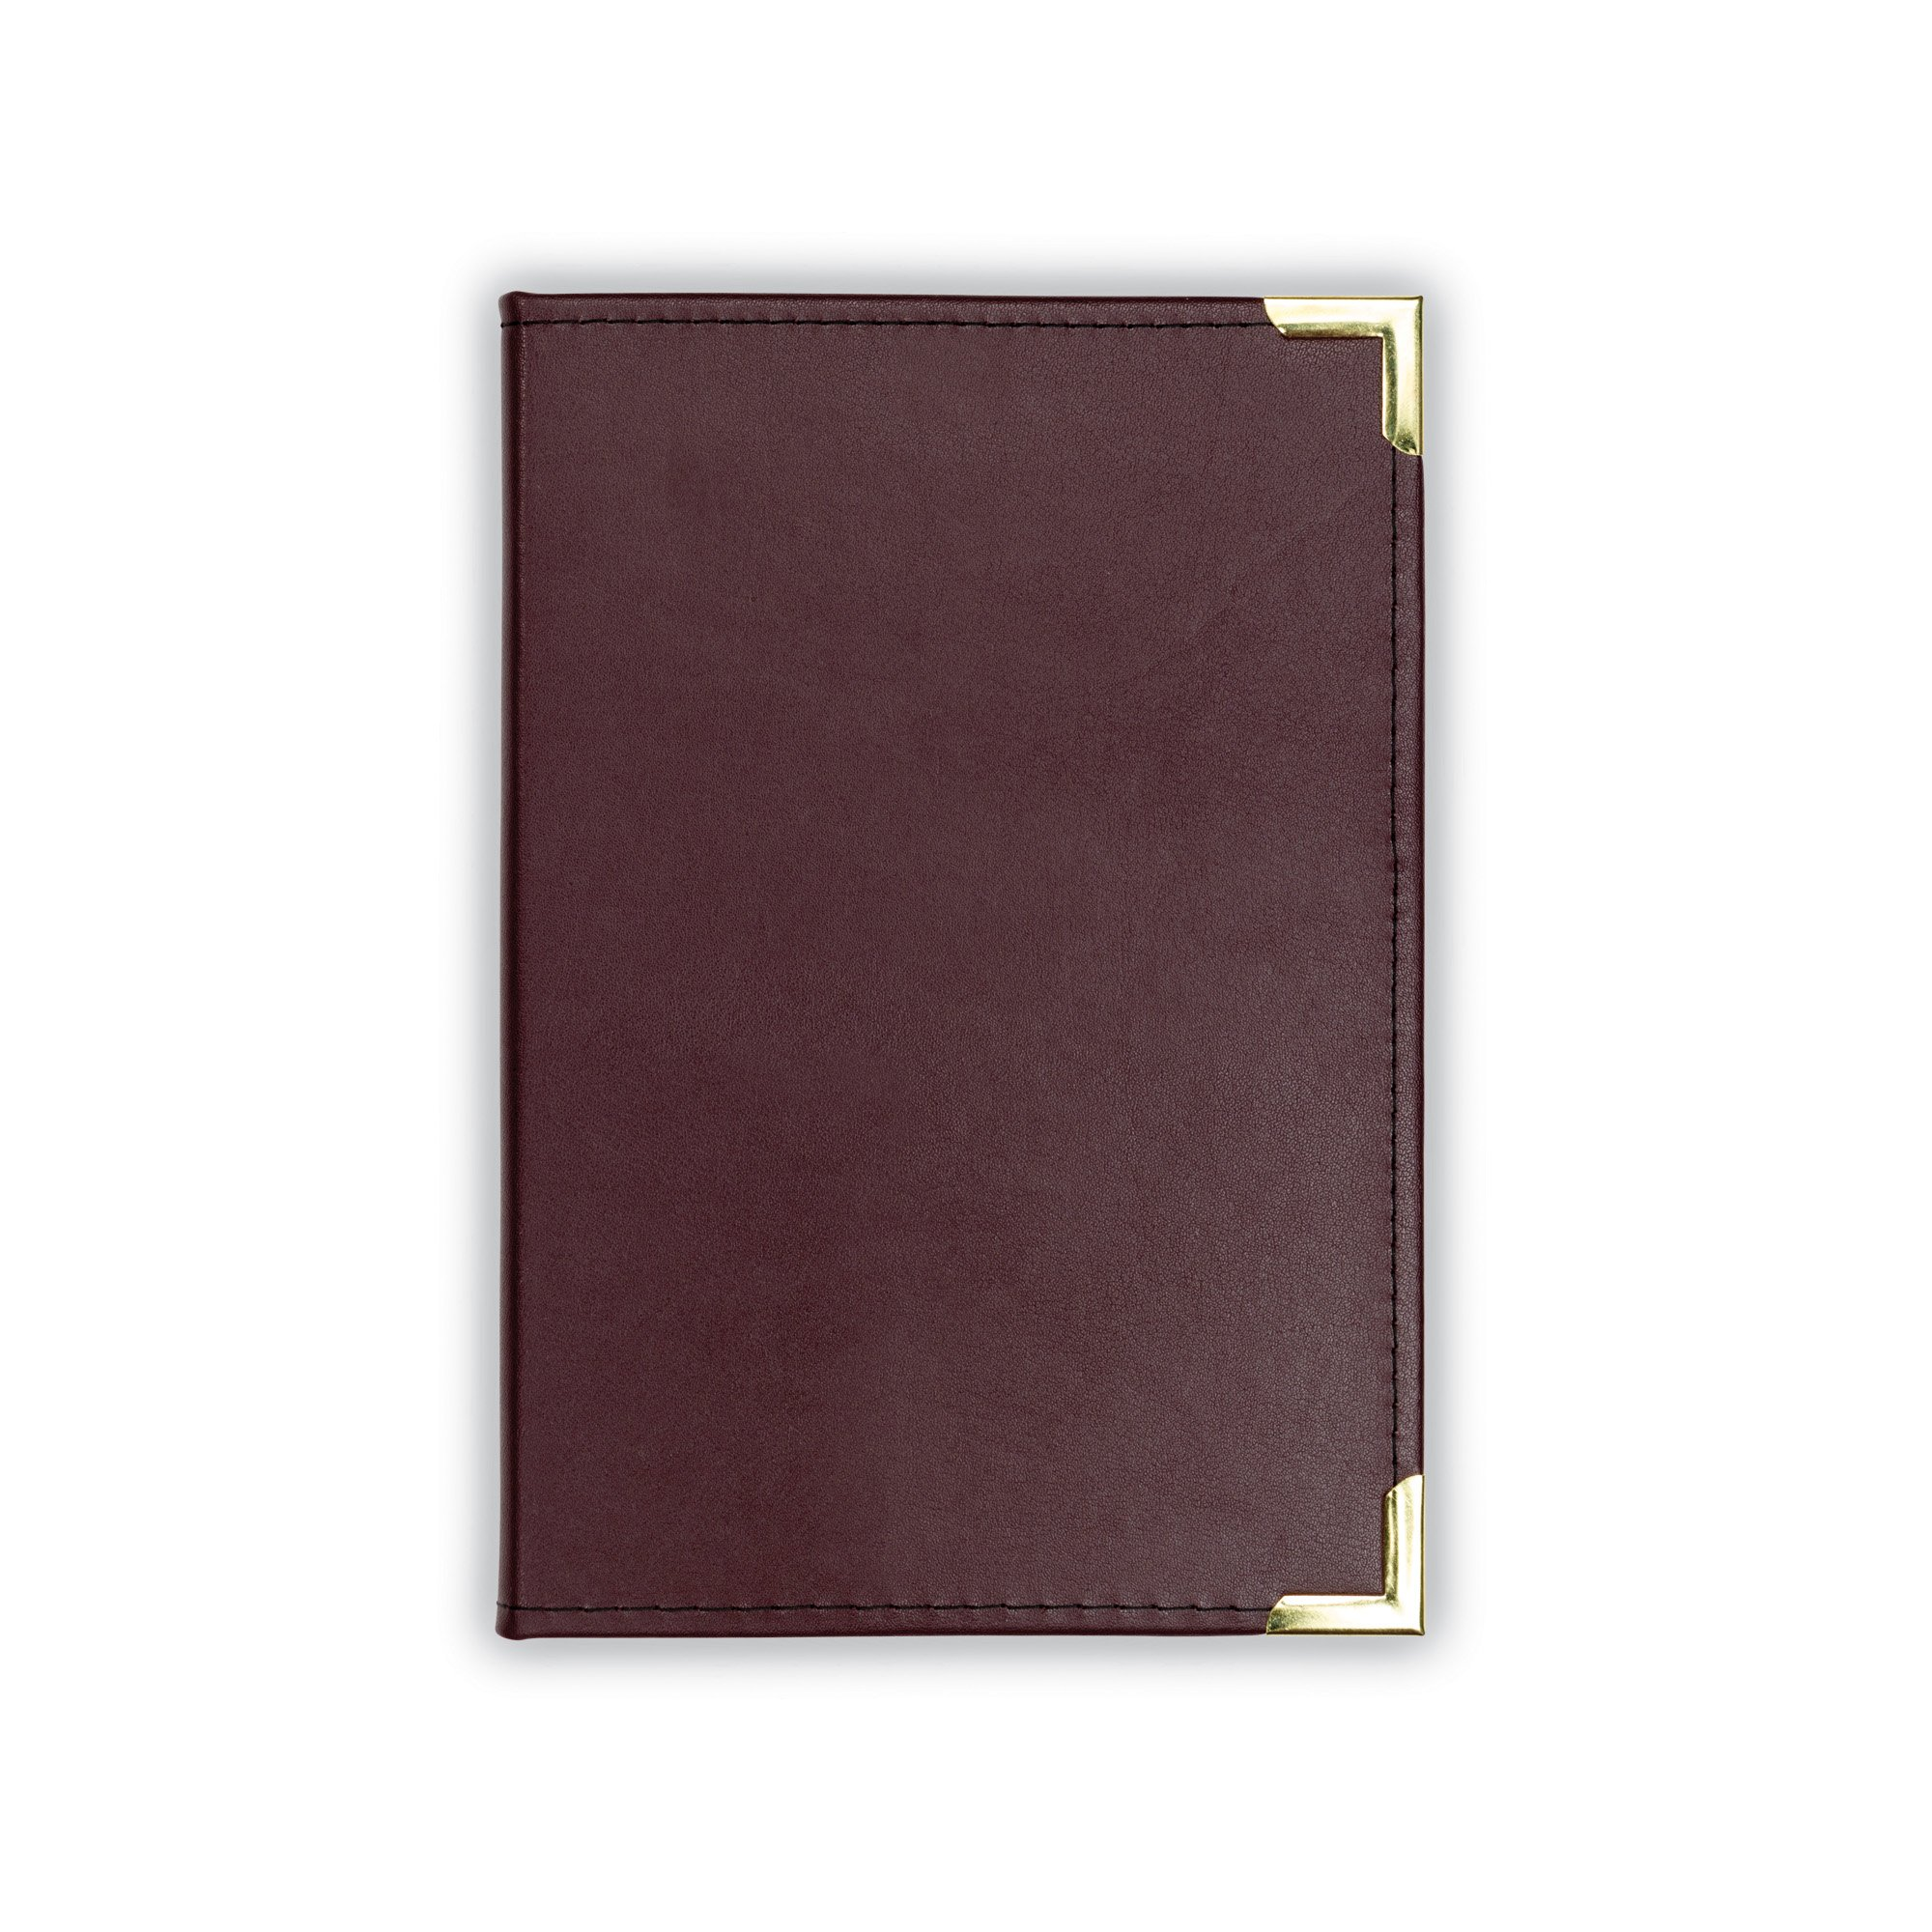 Samsill Classic Collection Executive Junior Padfolio - Interview / Business Portfolio with Brass Corners, 5 x 8 inch Writing Pad, Burgundy